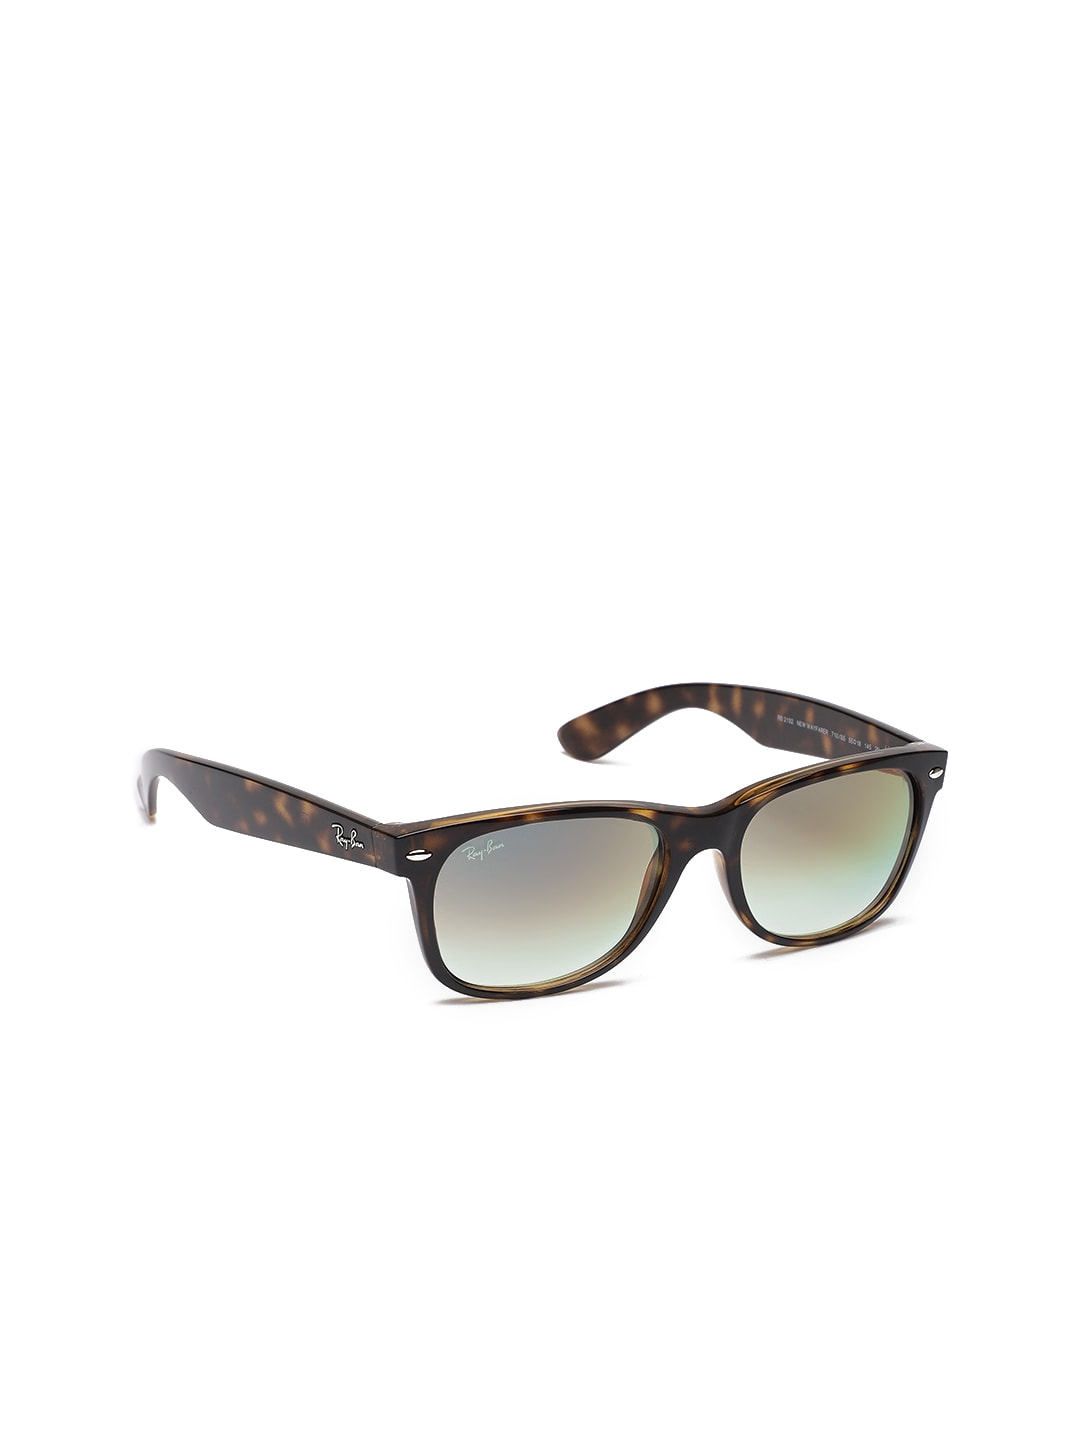 359ec8ed33 Ray-Ban® - Buy Ray-Ban Sunglasses   Frames Online in India